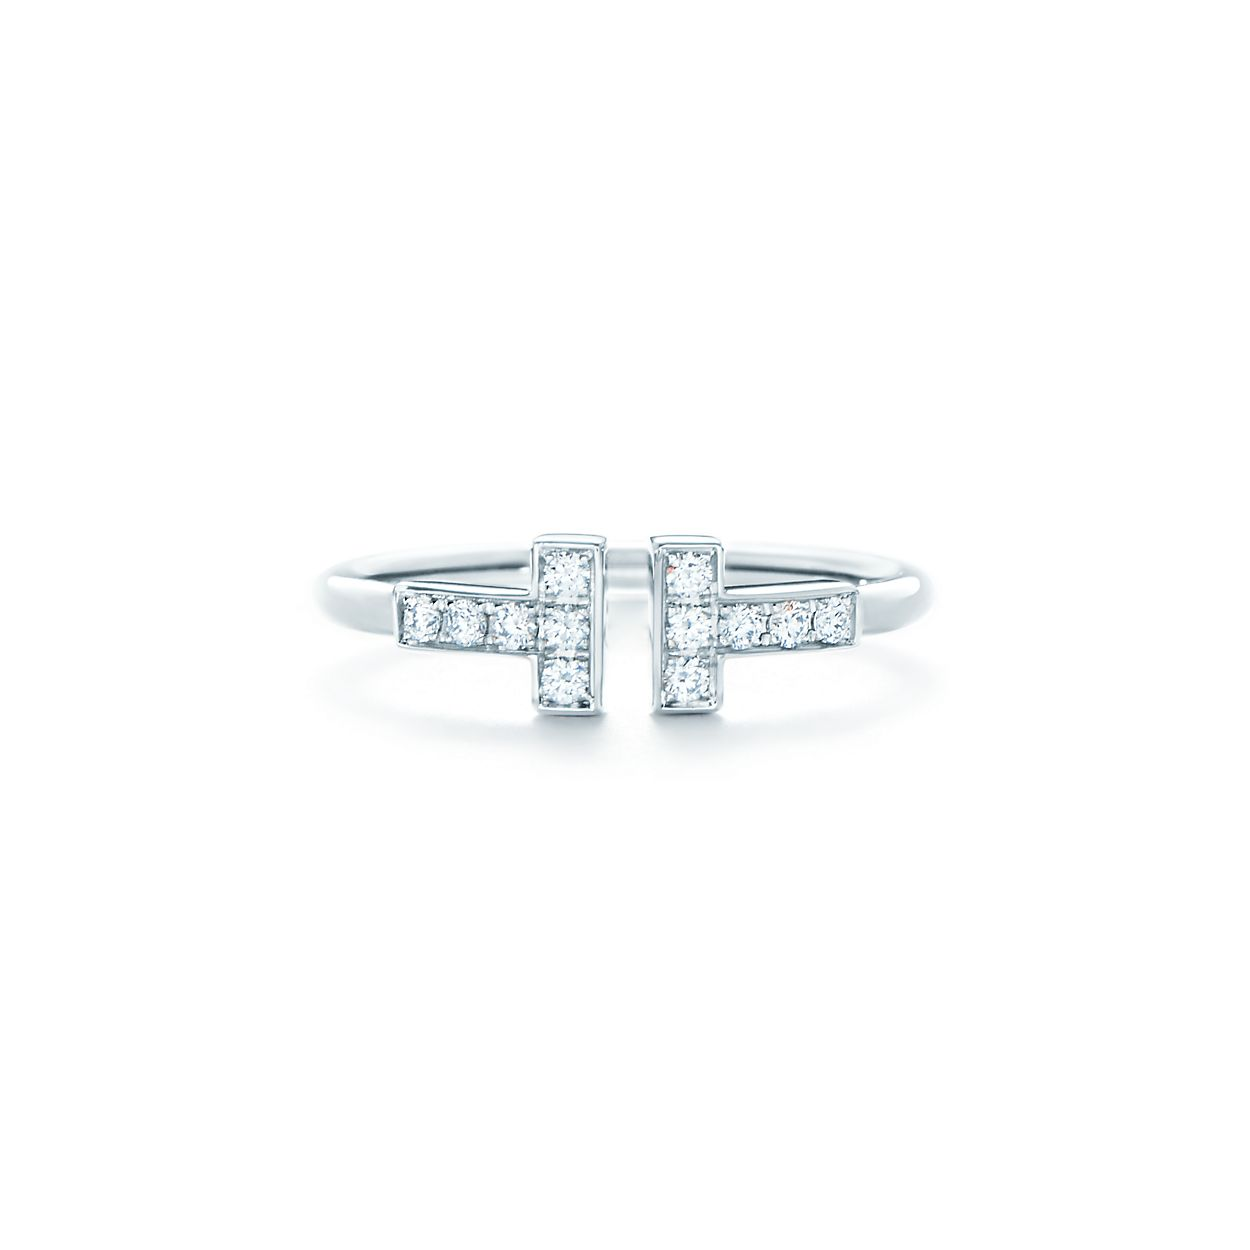 Tiffany T wire ring in 18k white gold - Size 9 Tiffany & Co. ZSjac